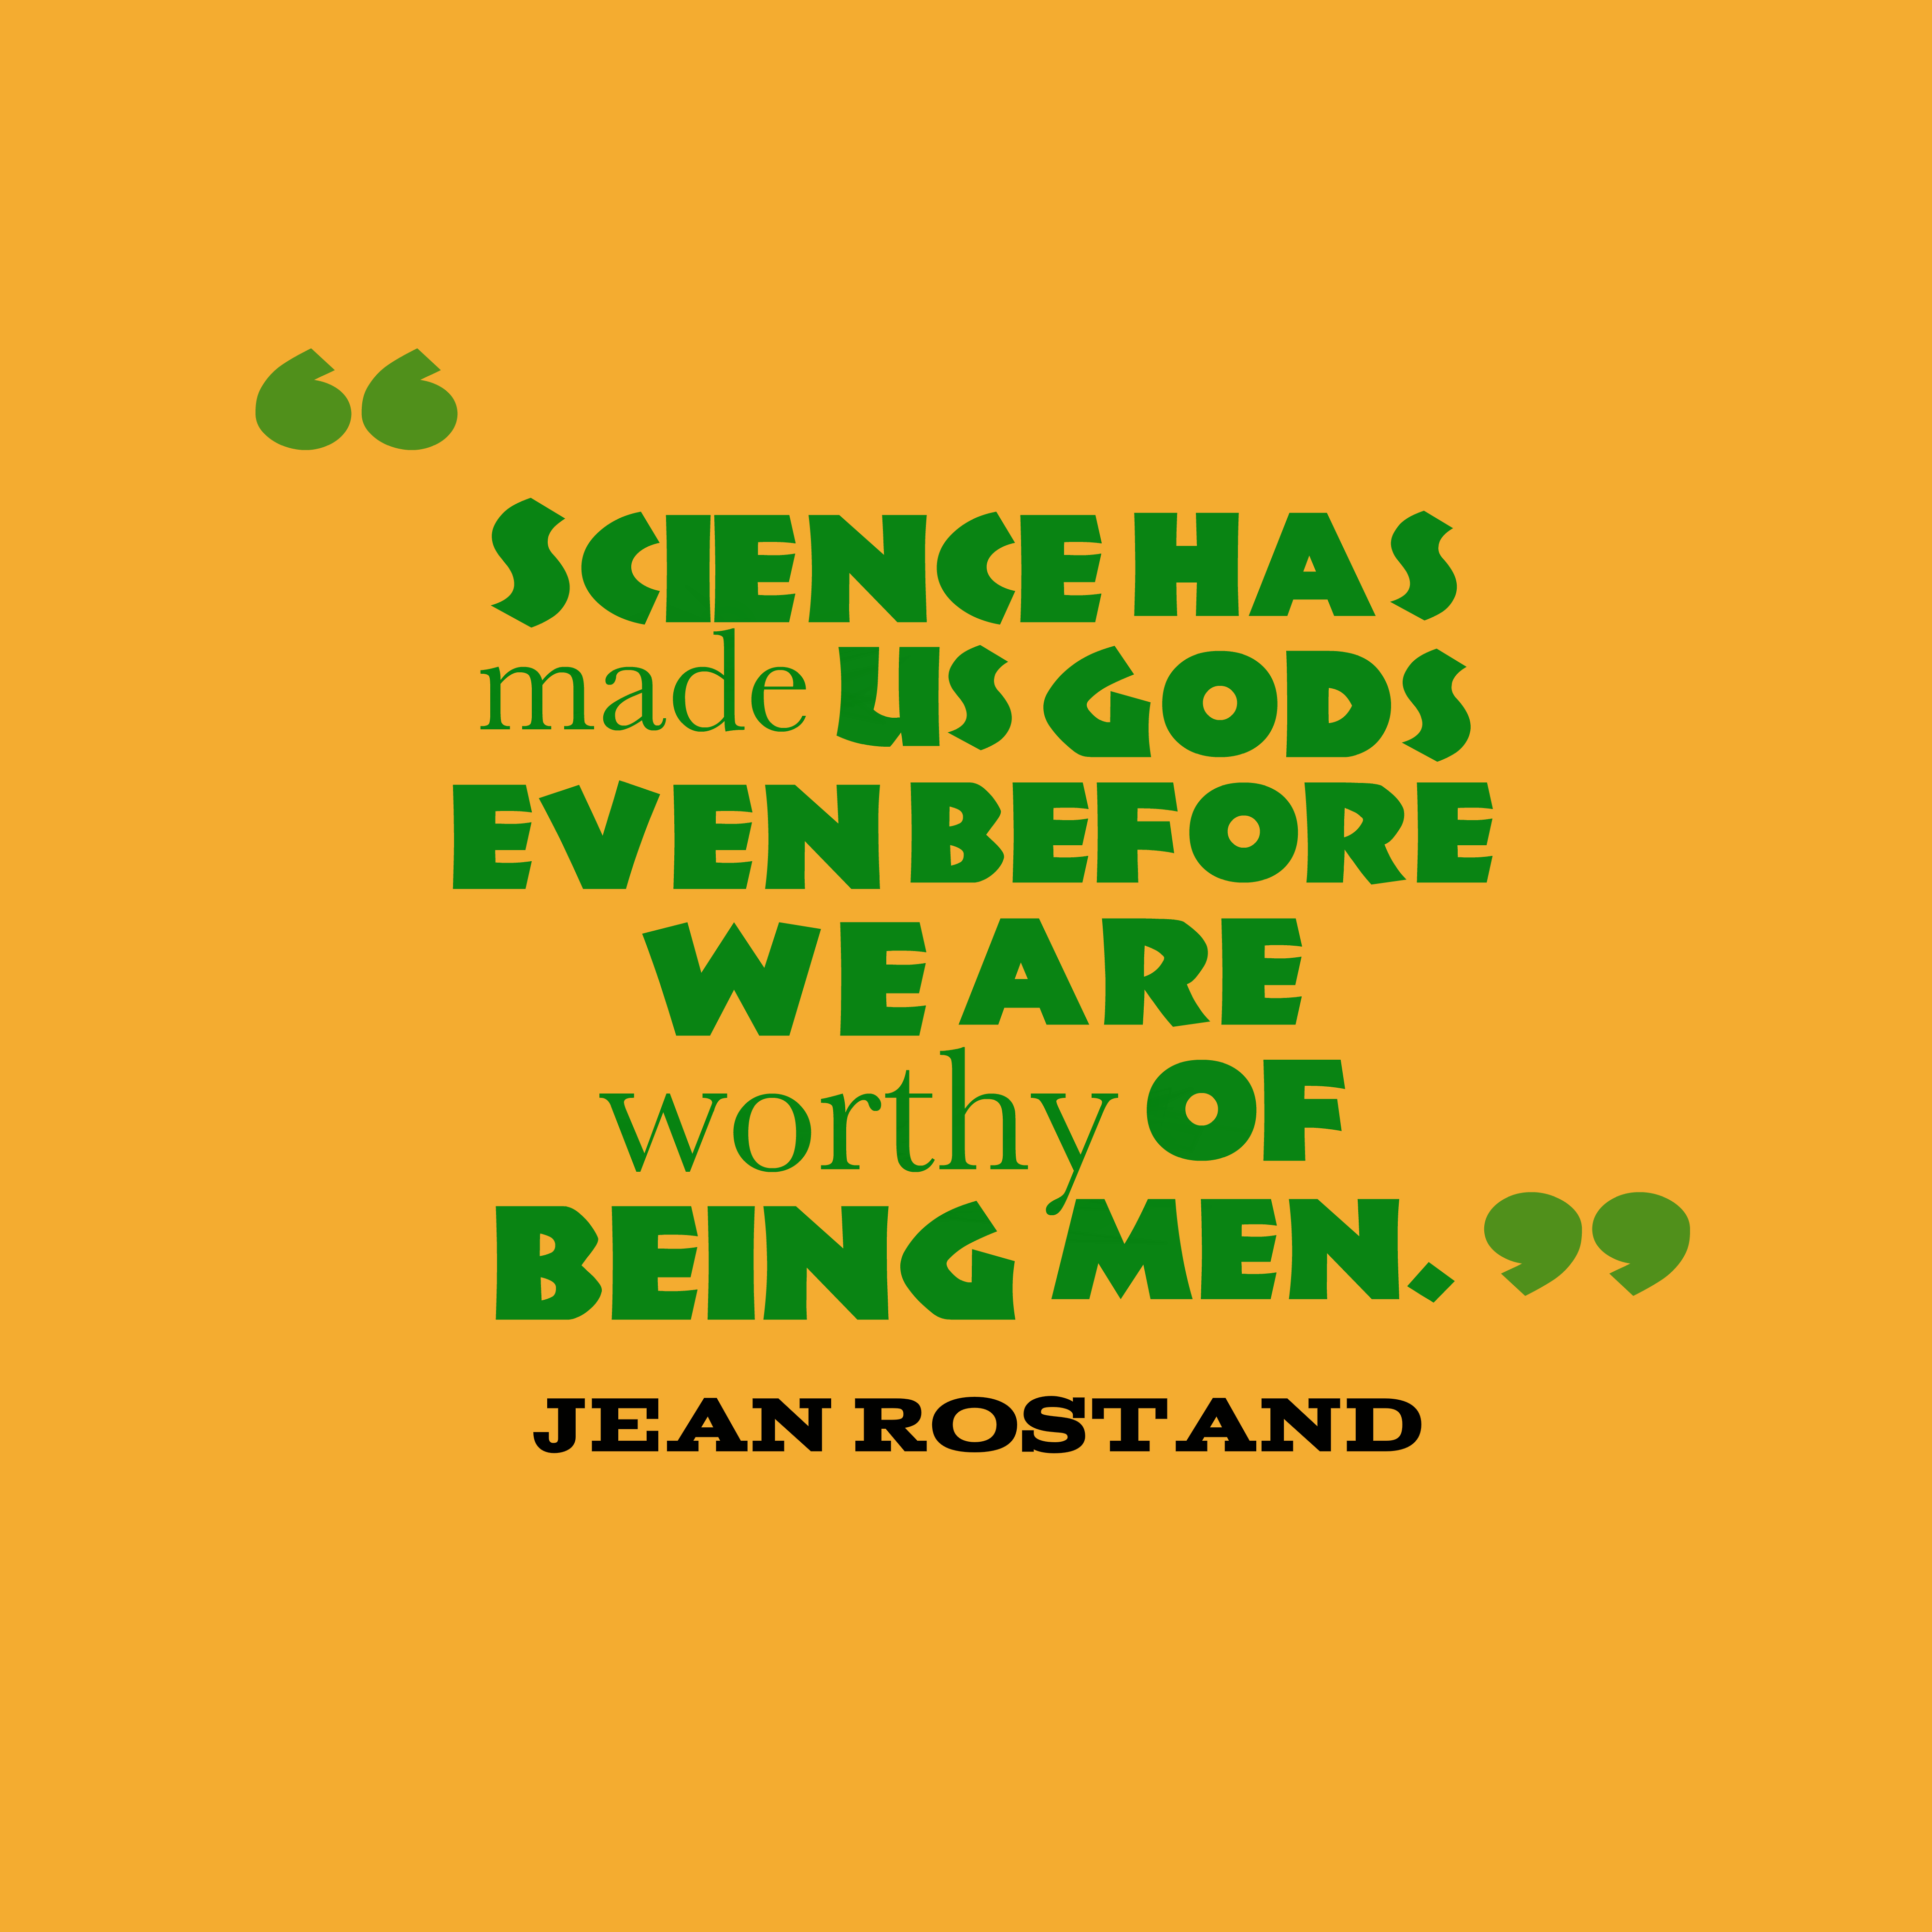 Jean Rostand Quote About Science